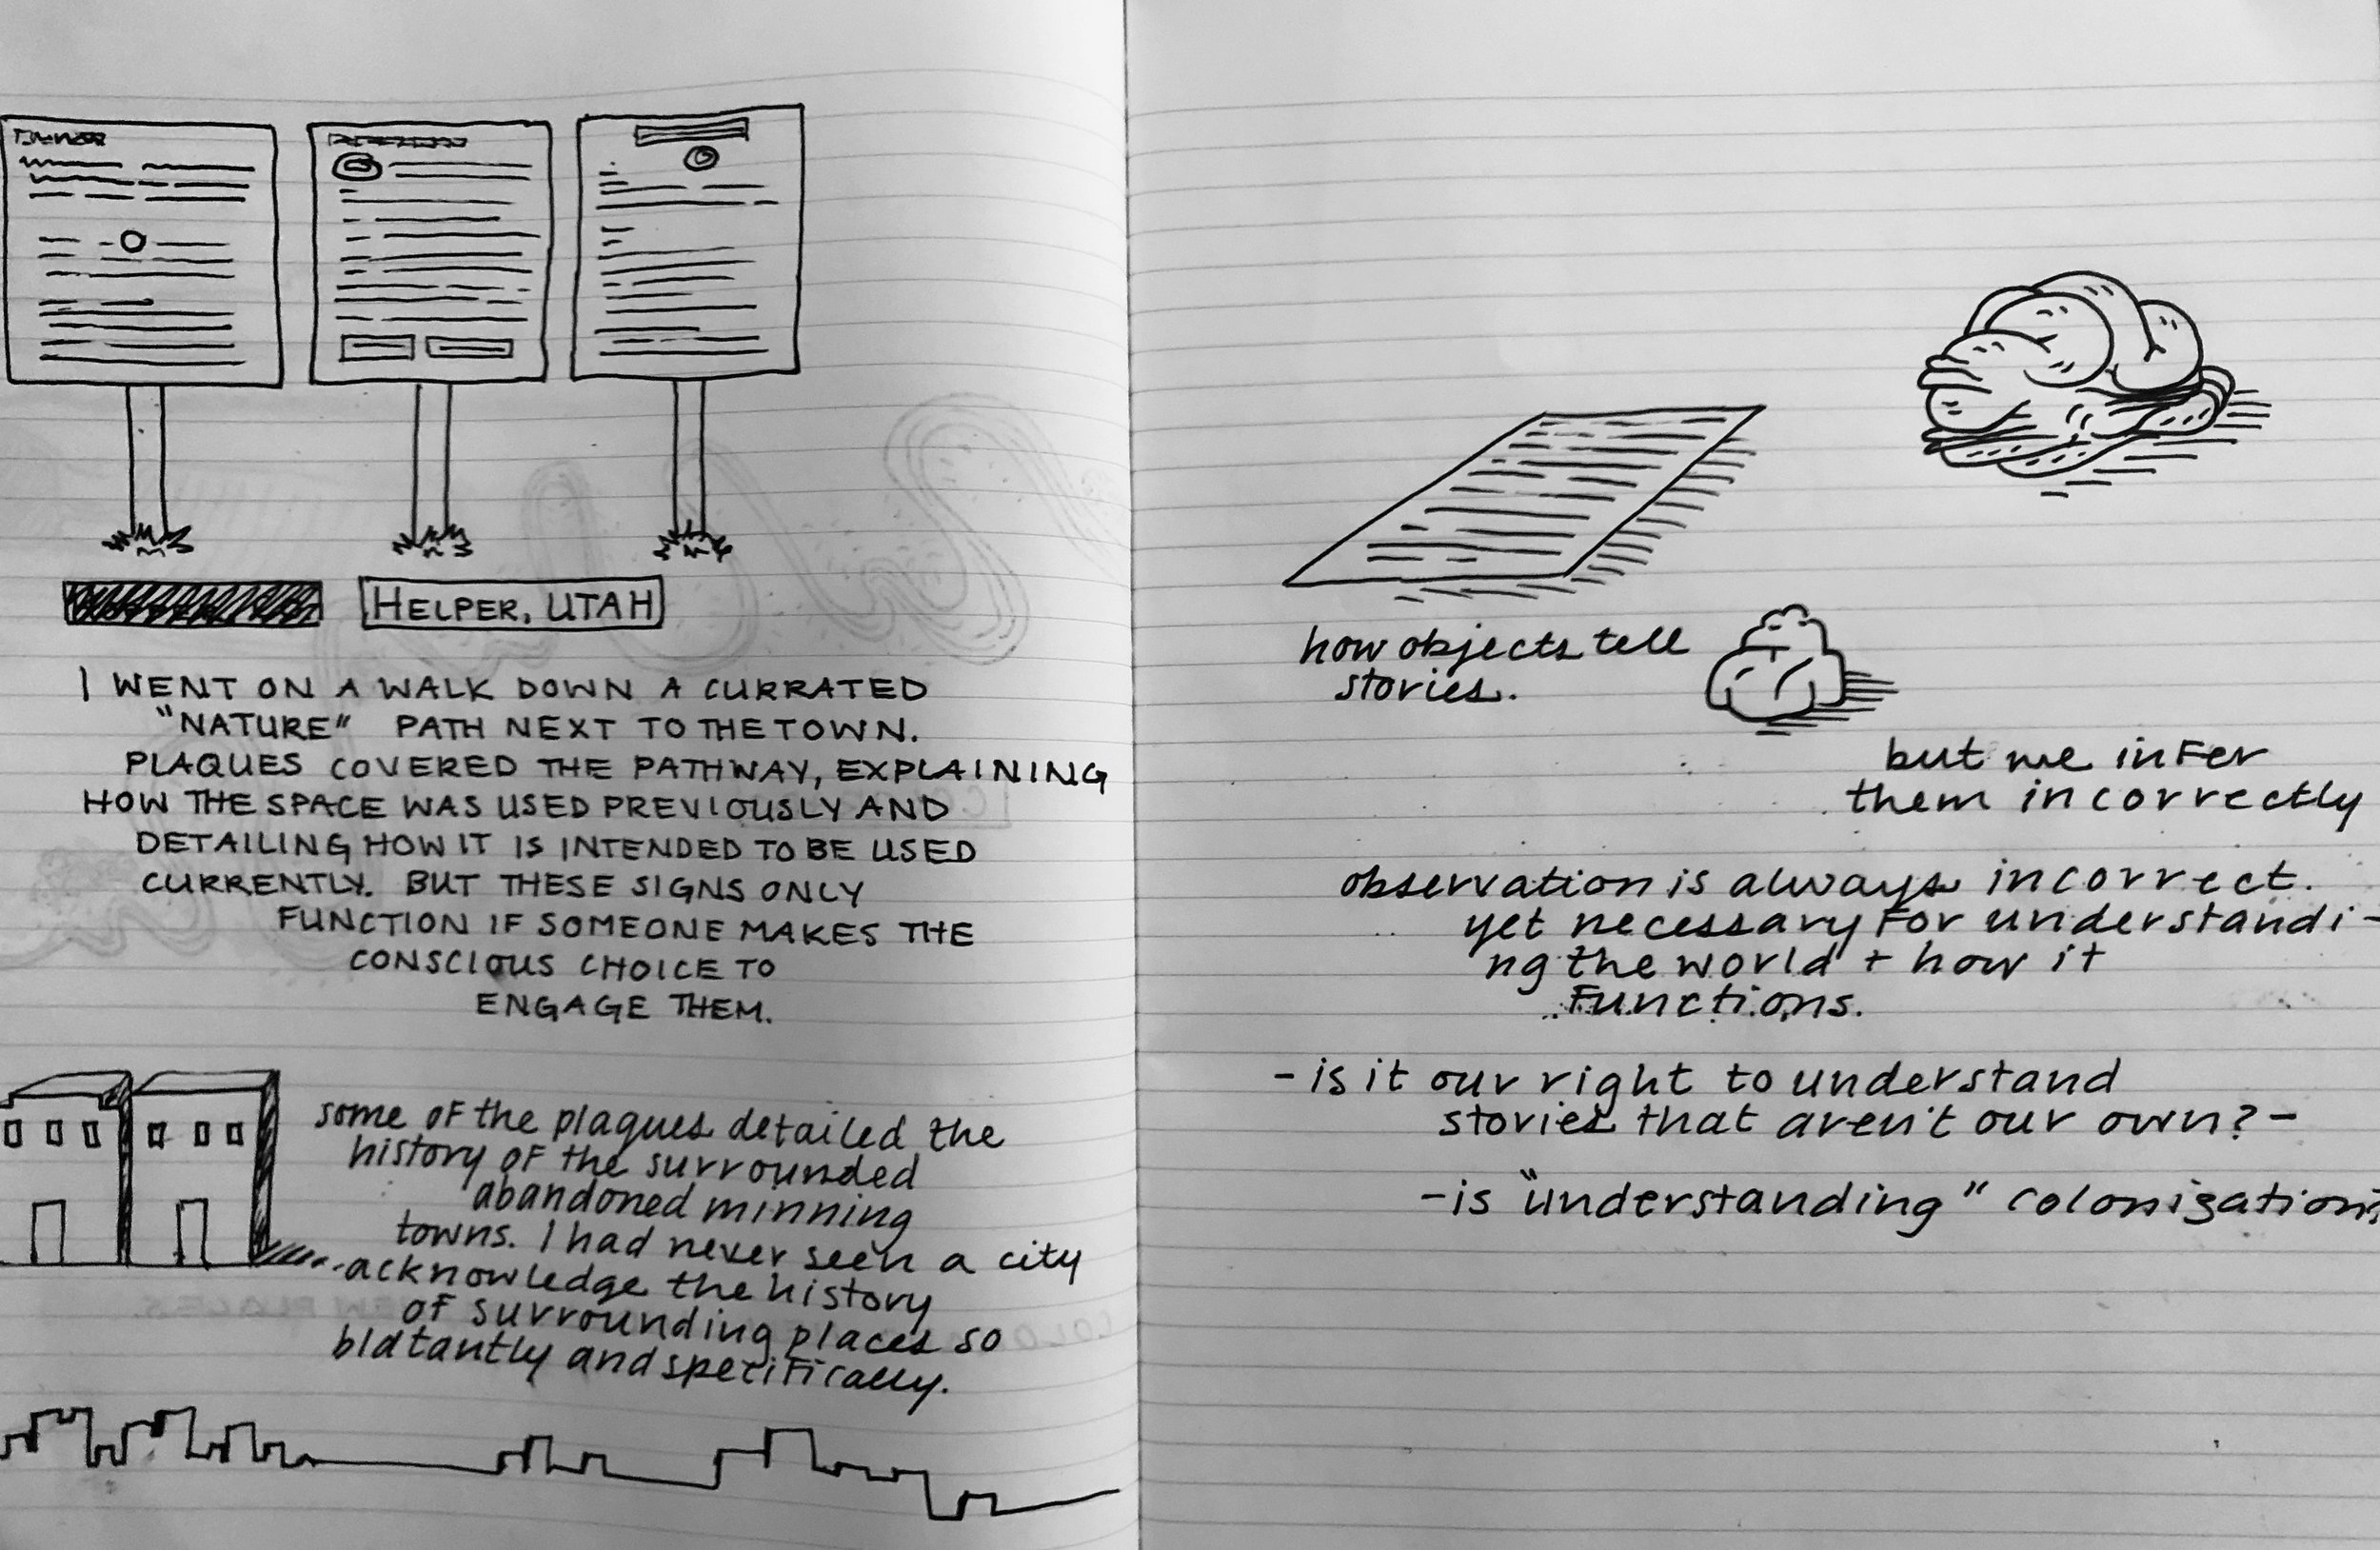 These two pages show my thoughts about how I moved through space in the town of Helper, UT and my questions moving forward for exploring objects and spaces.